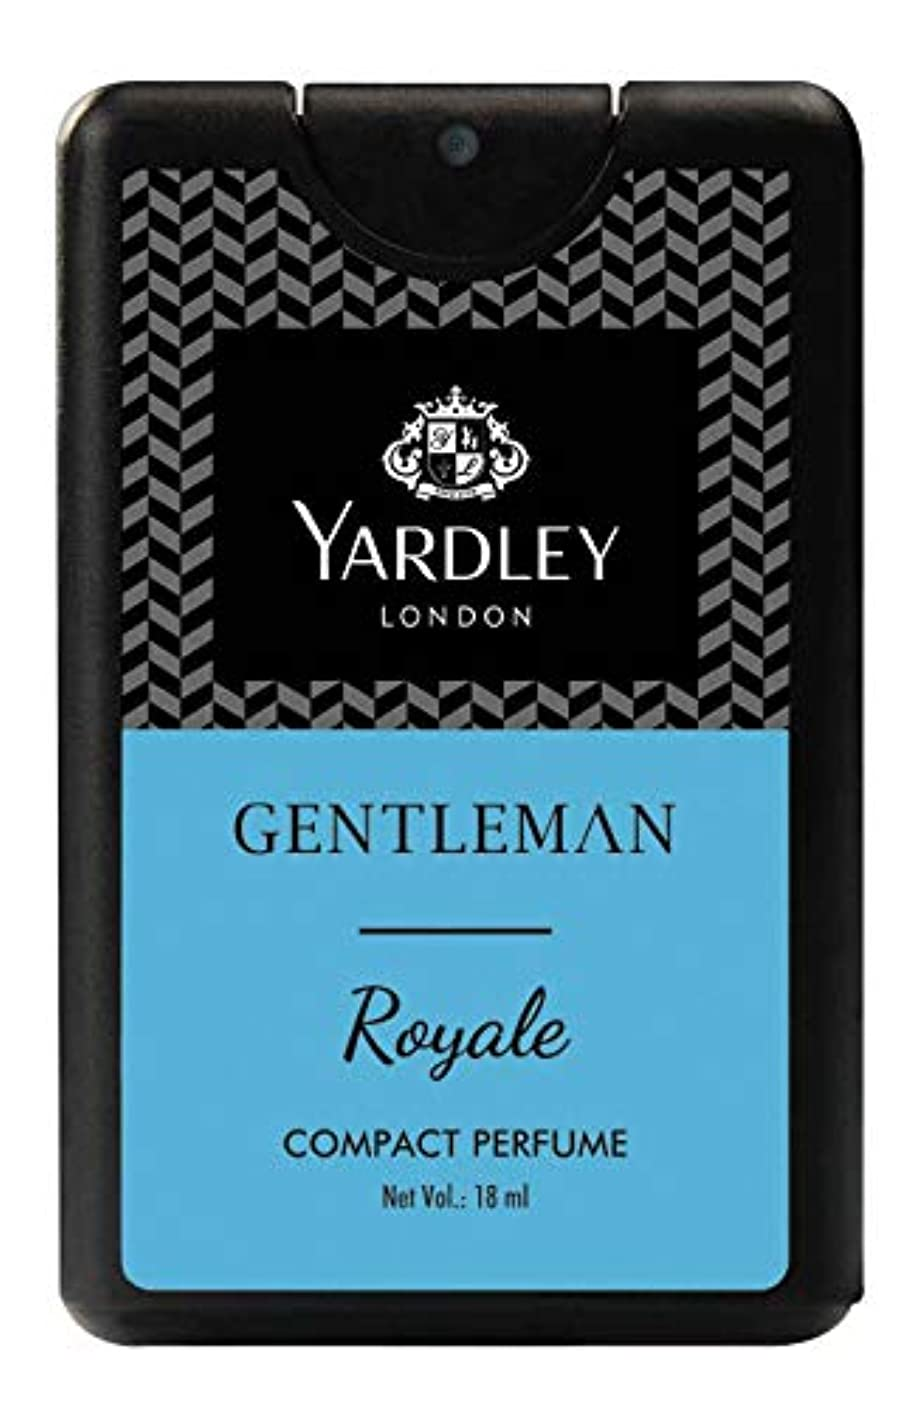 メイト文芸物質Yardley Gentleman Royale Compact Perfume 18 ml